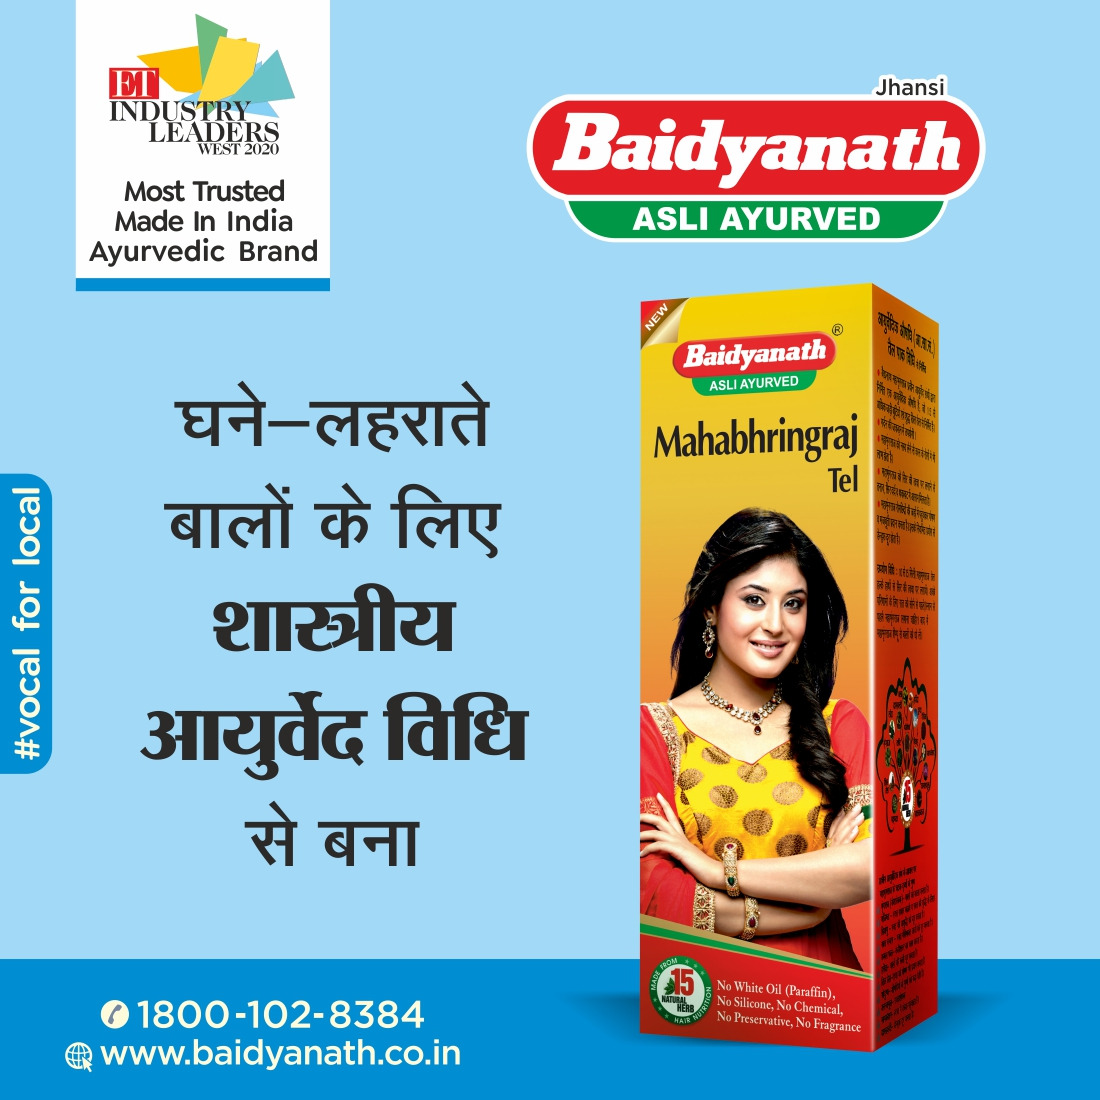 Baidyanath Mahabhringraj Tel for Healthy & Shiny hair. Buy now:  #Baidyanath #ayurveda #ayurvedic #healthyhair #shinyhair #vocalforlocal